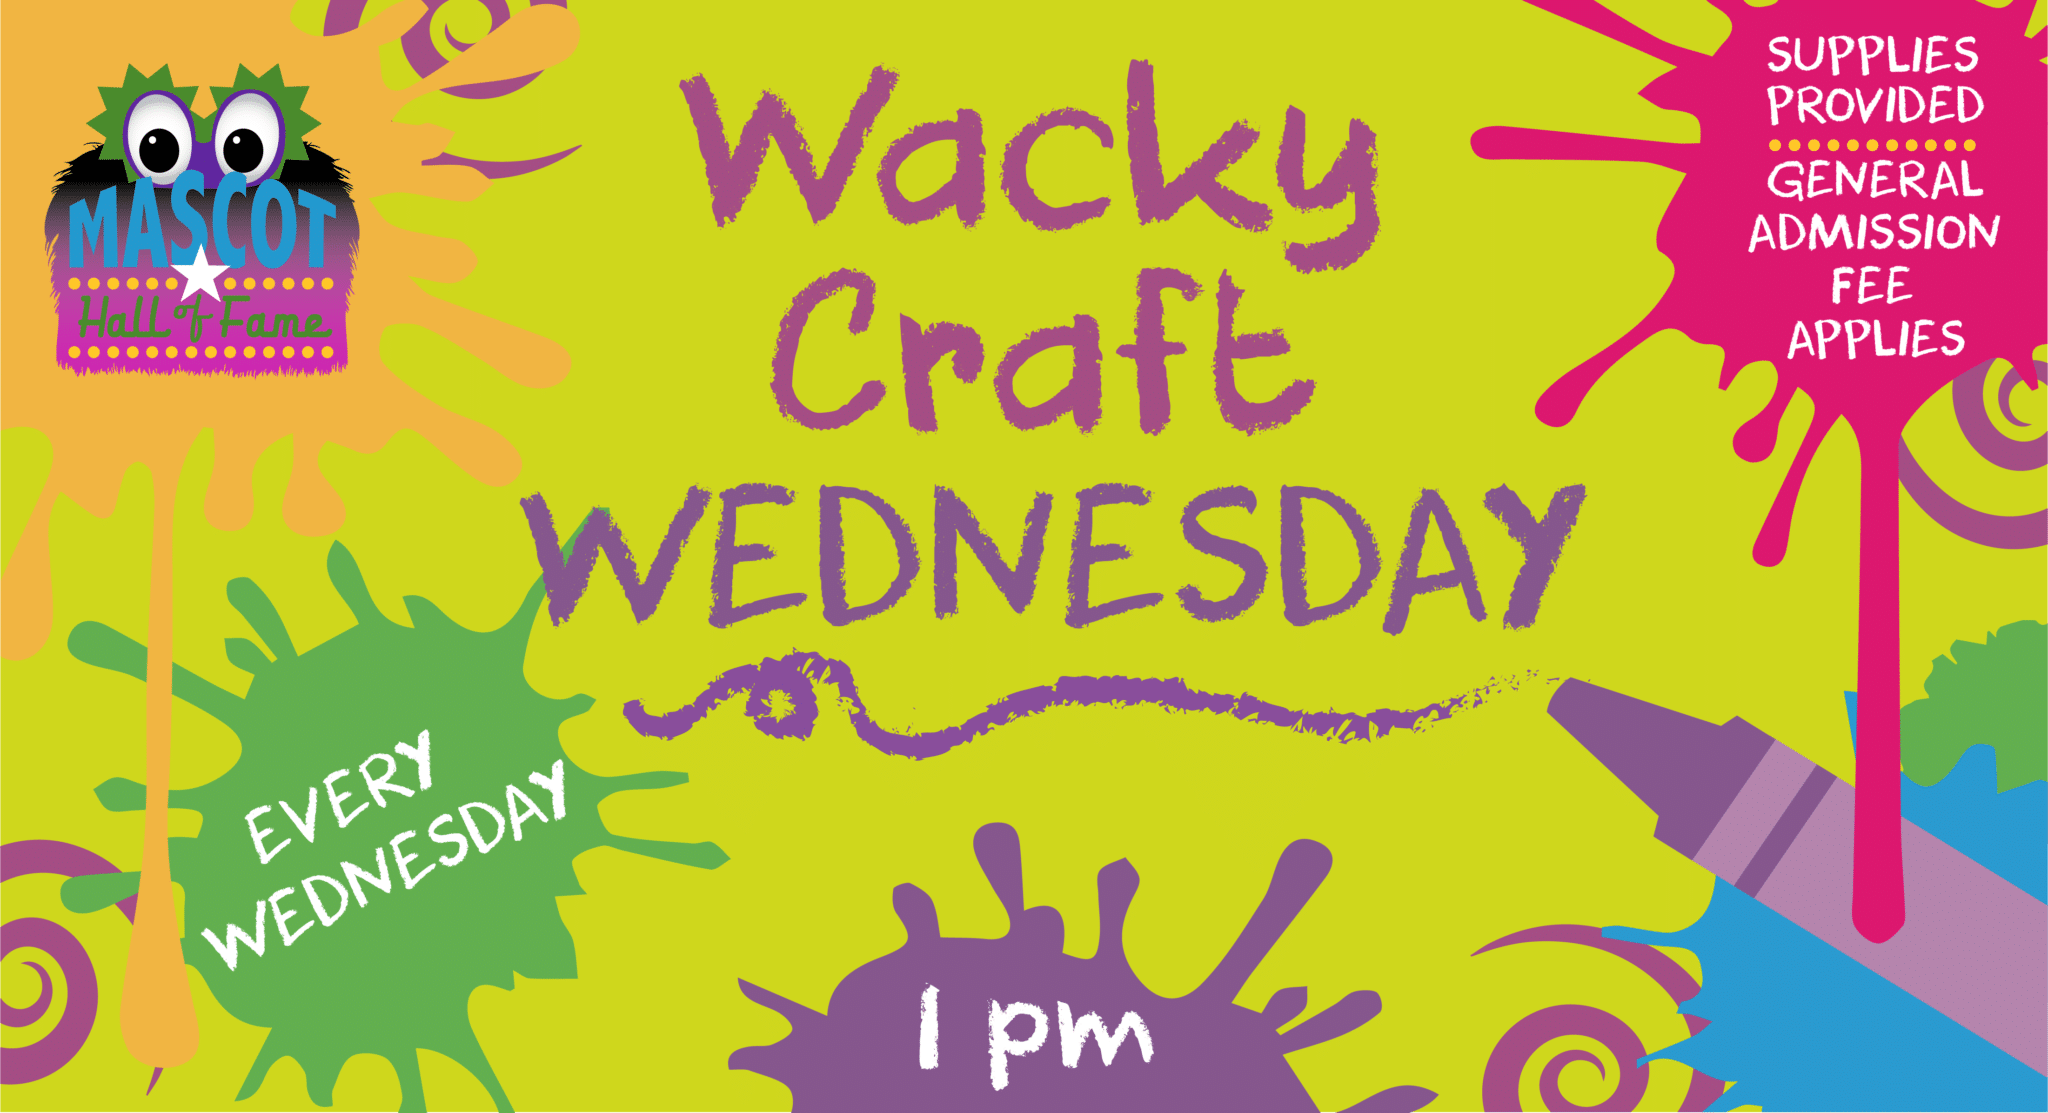 MHOF Wacky Craft Wednesday